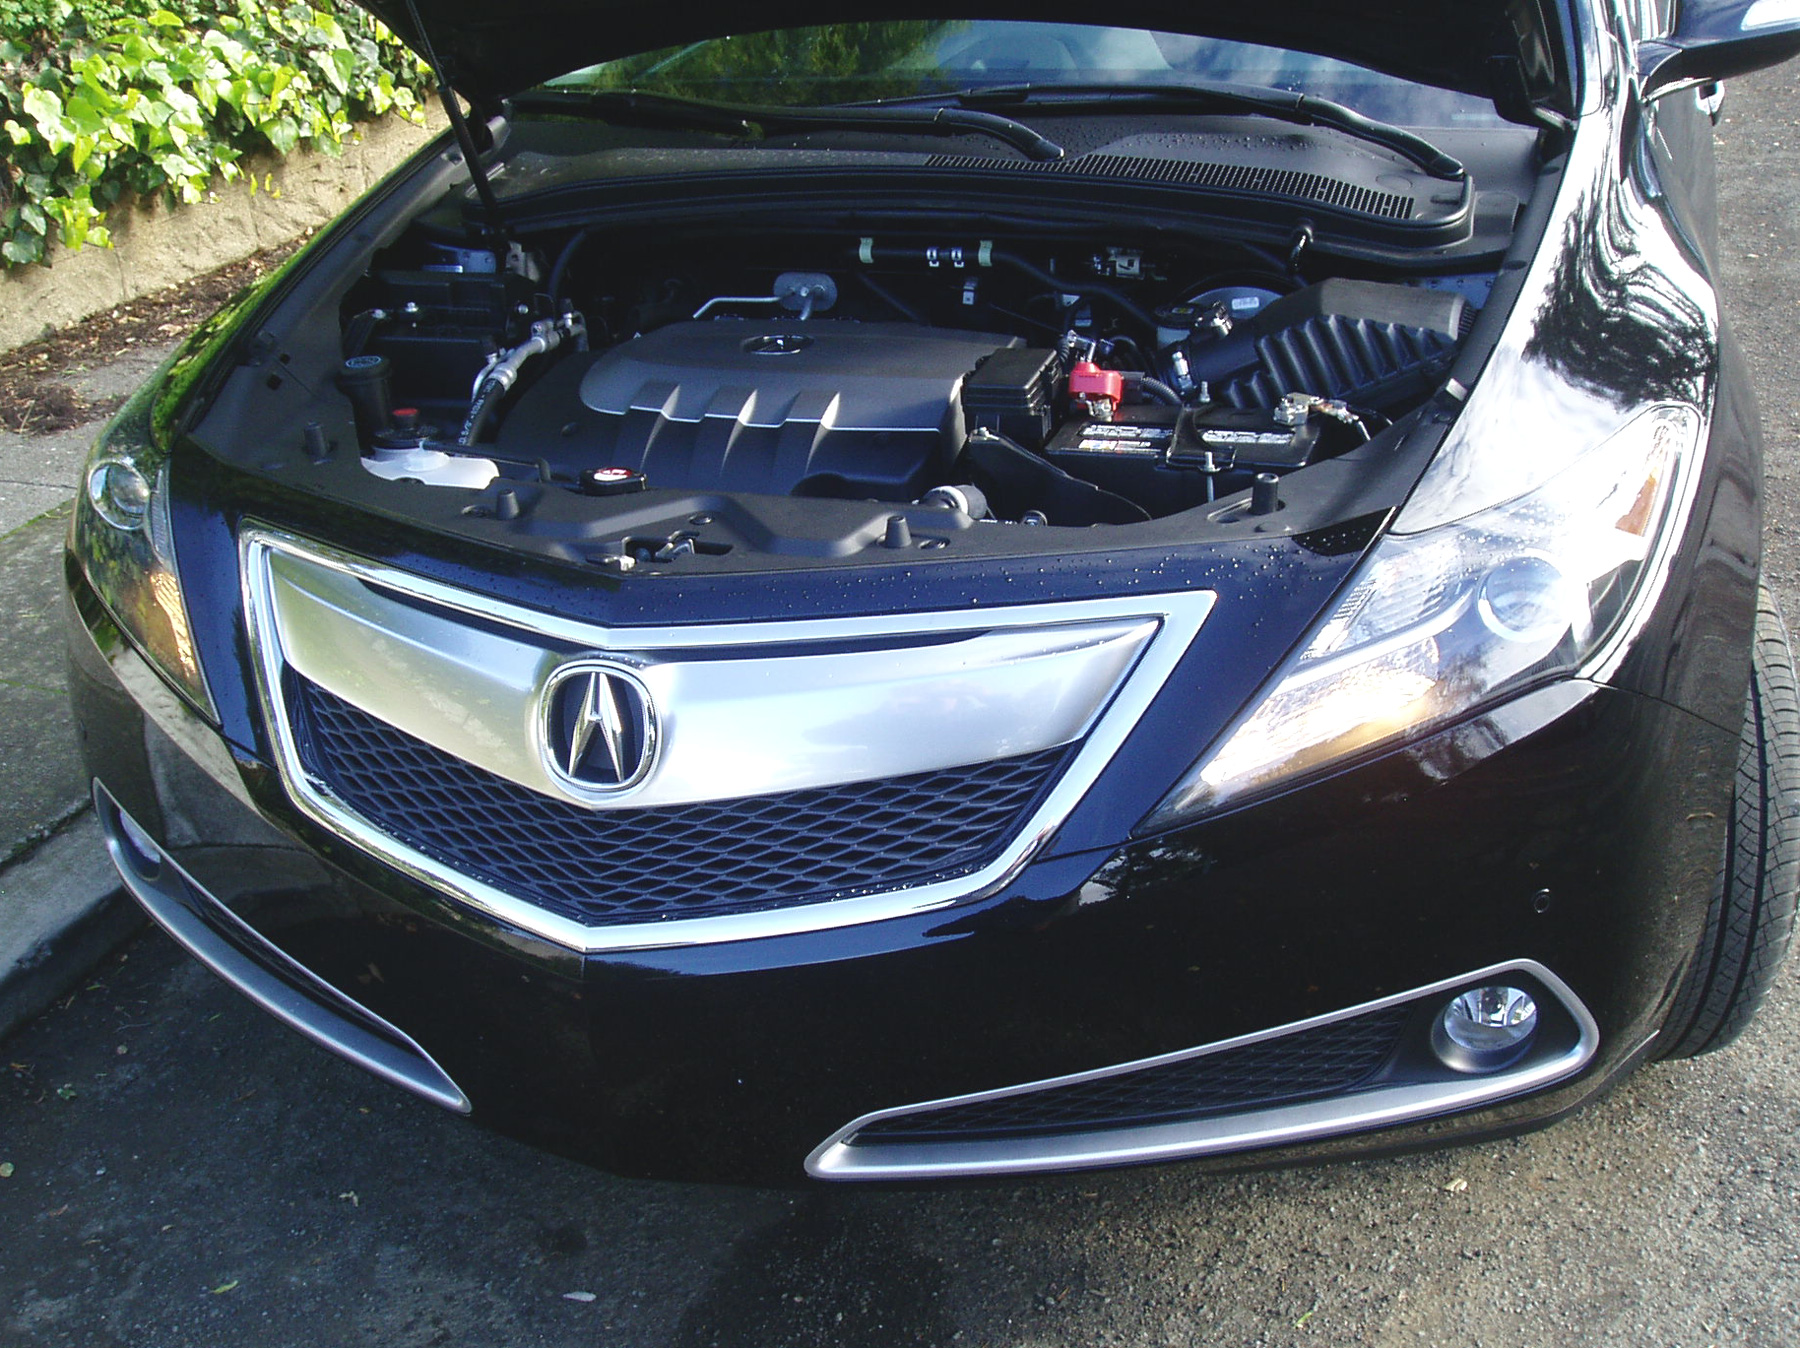 acura truth sale refreshing signs for cars nhtsa zdx advance be death may warrant about the